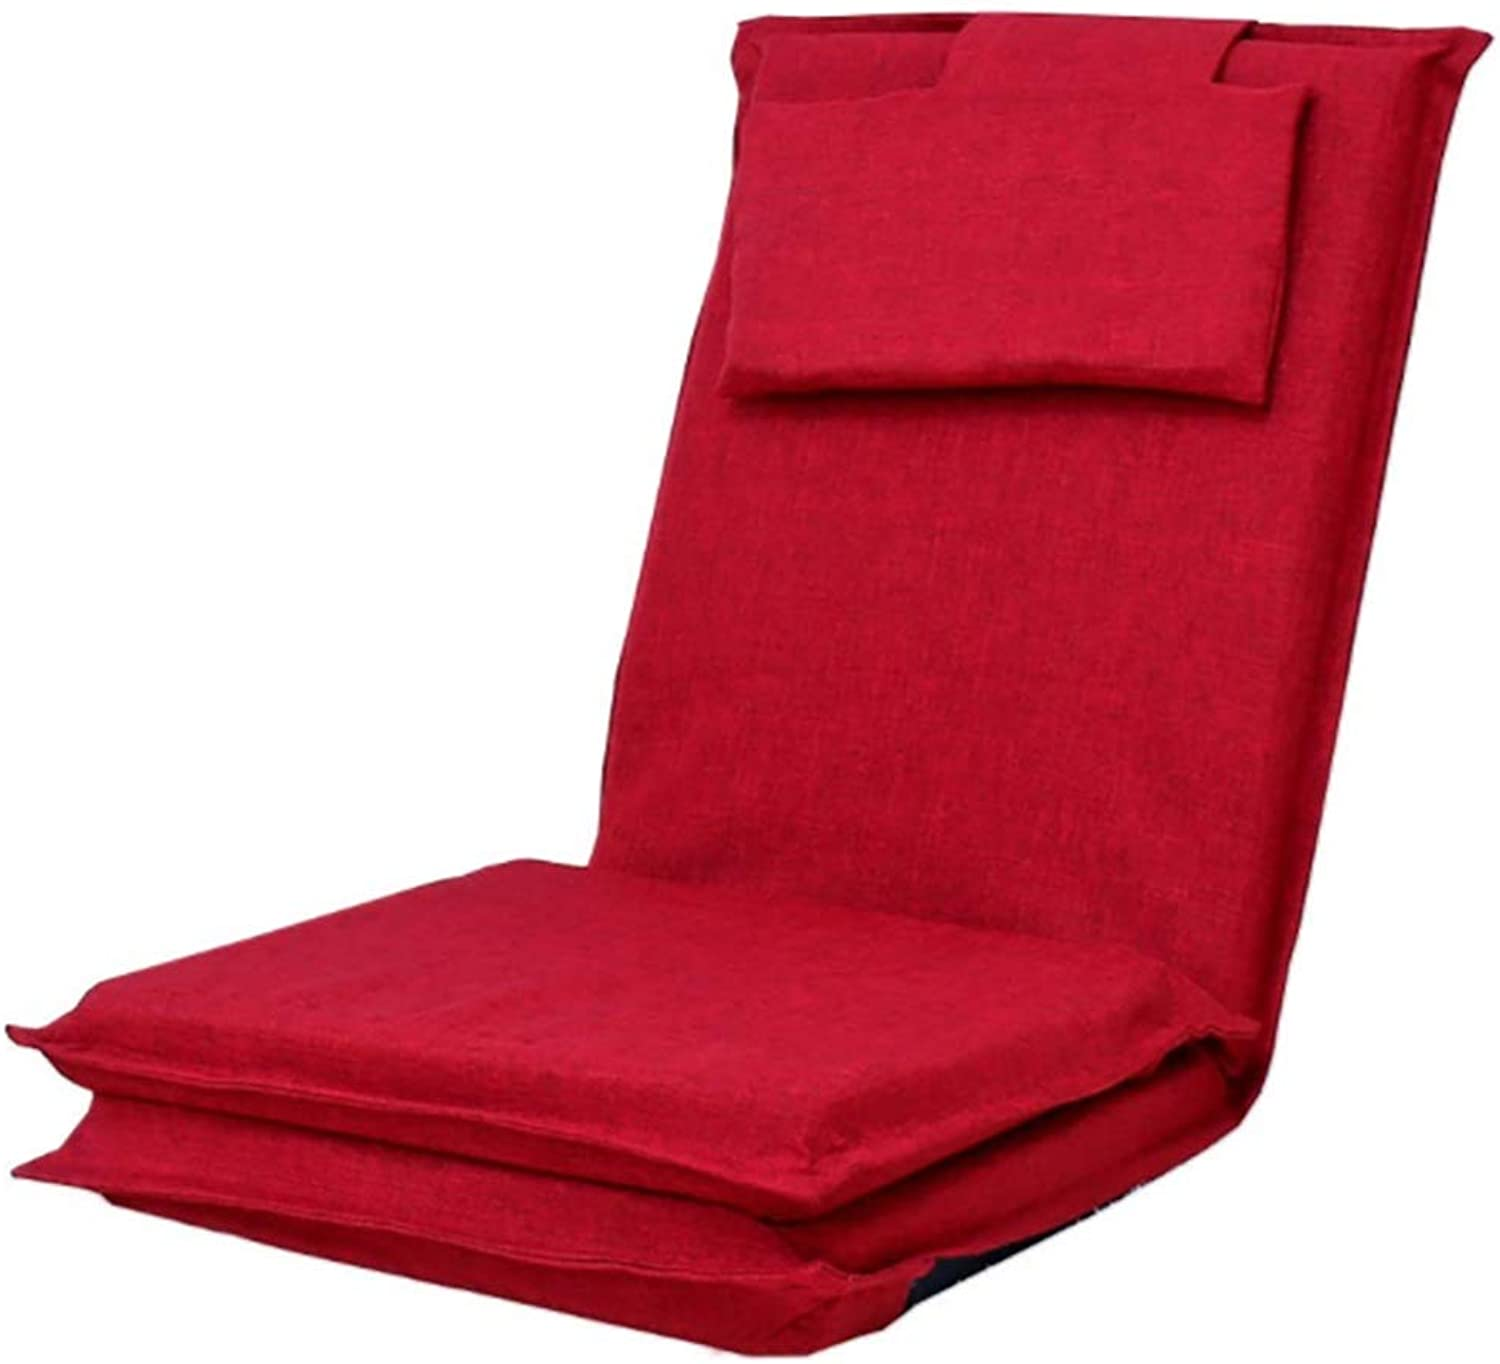 64e9358fb2f6 XEWNEG Lazy Sofa Foldable Floor Balcony Sofa Single Backrest Chair (167  52cm) (color Red) Chair Bed nszhhw7040-Furniture